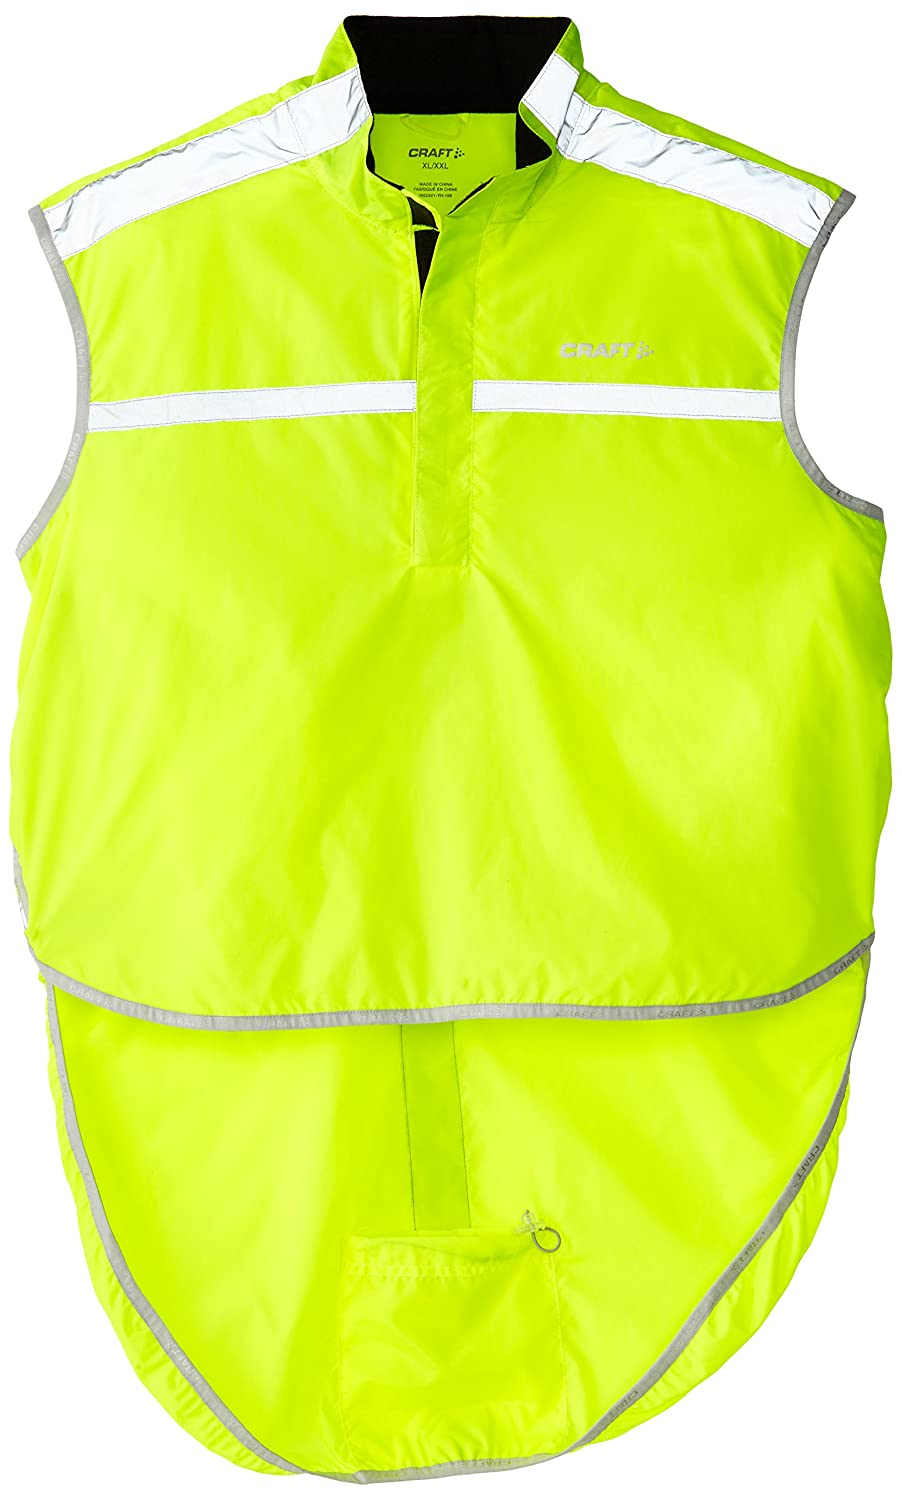 d6d2affa Craft Bike Visibility Vest, Neon, X-Small/Small: Amazon.co.uk: Sports &  Outdoors